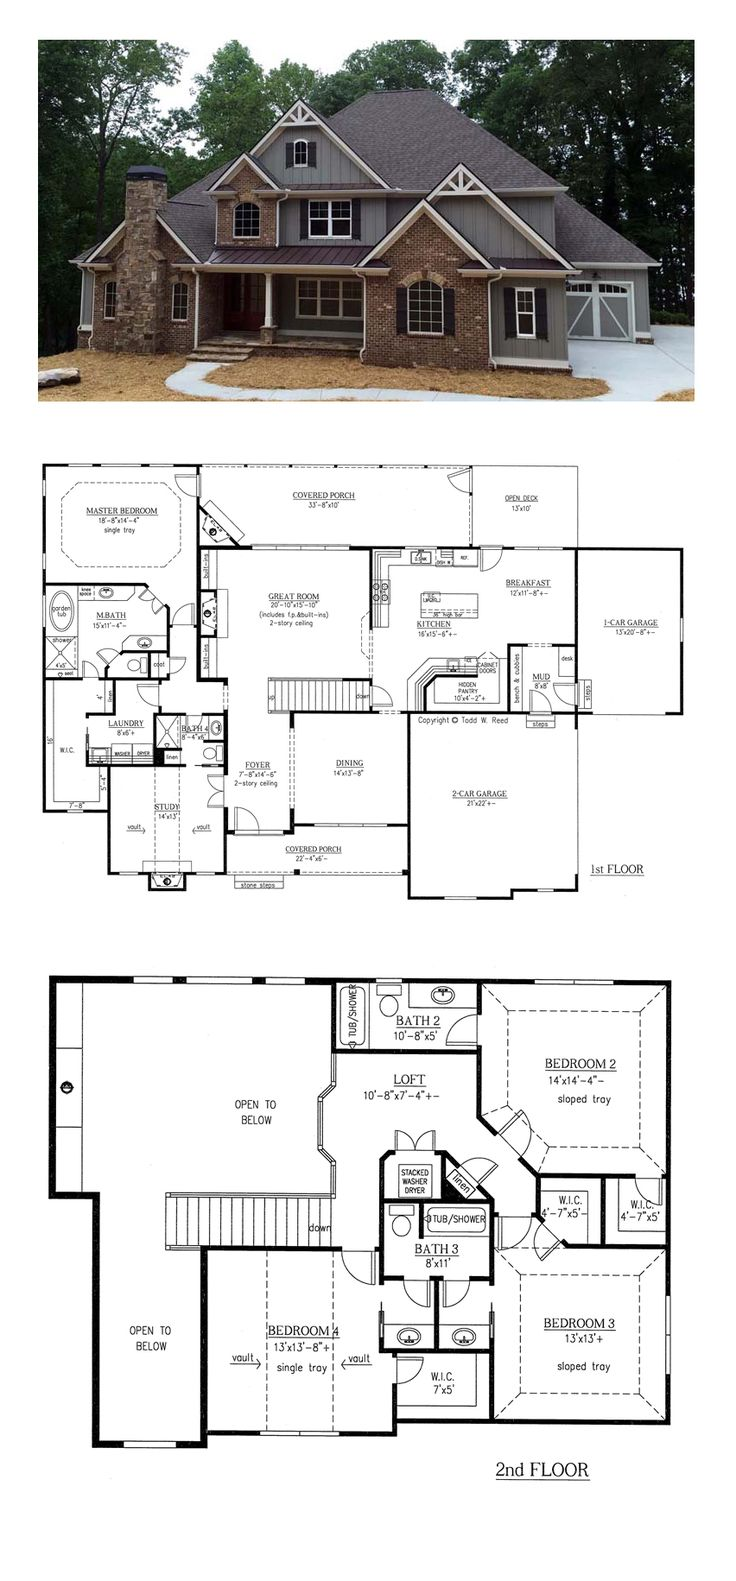 House Design Layout | Best 25 House Layouts Ideas On Pinterest Floor Plans House